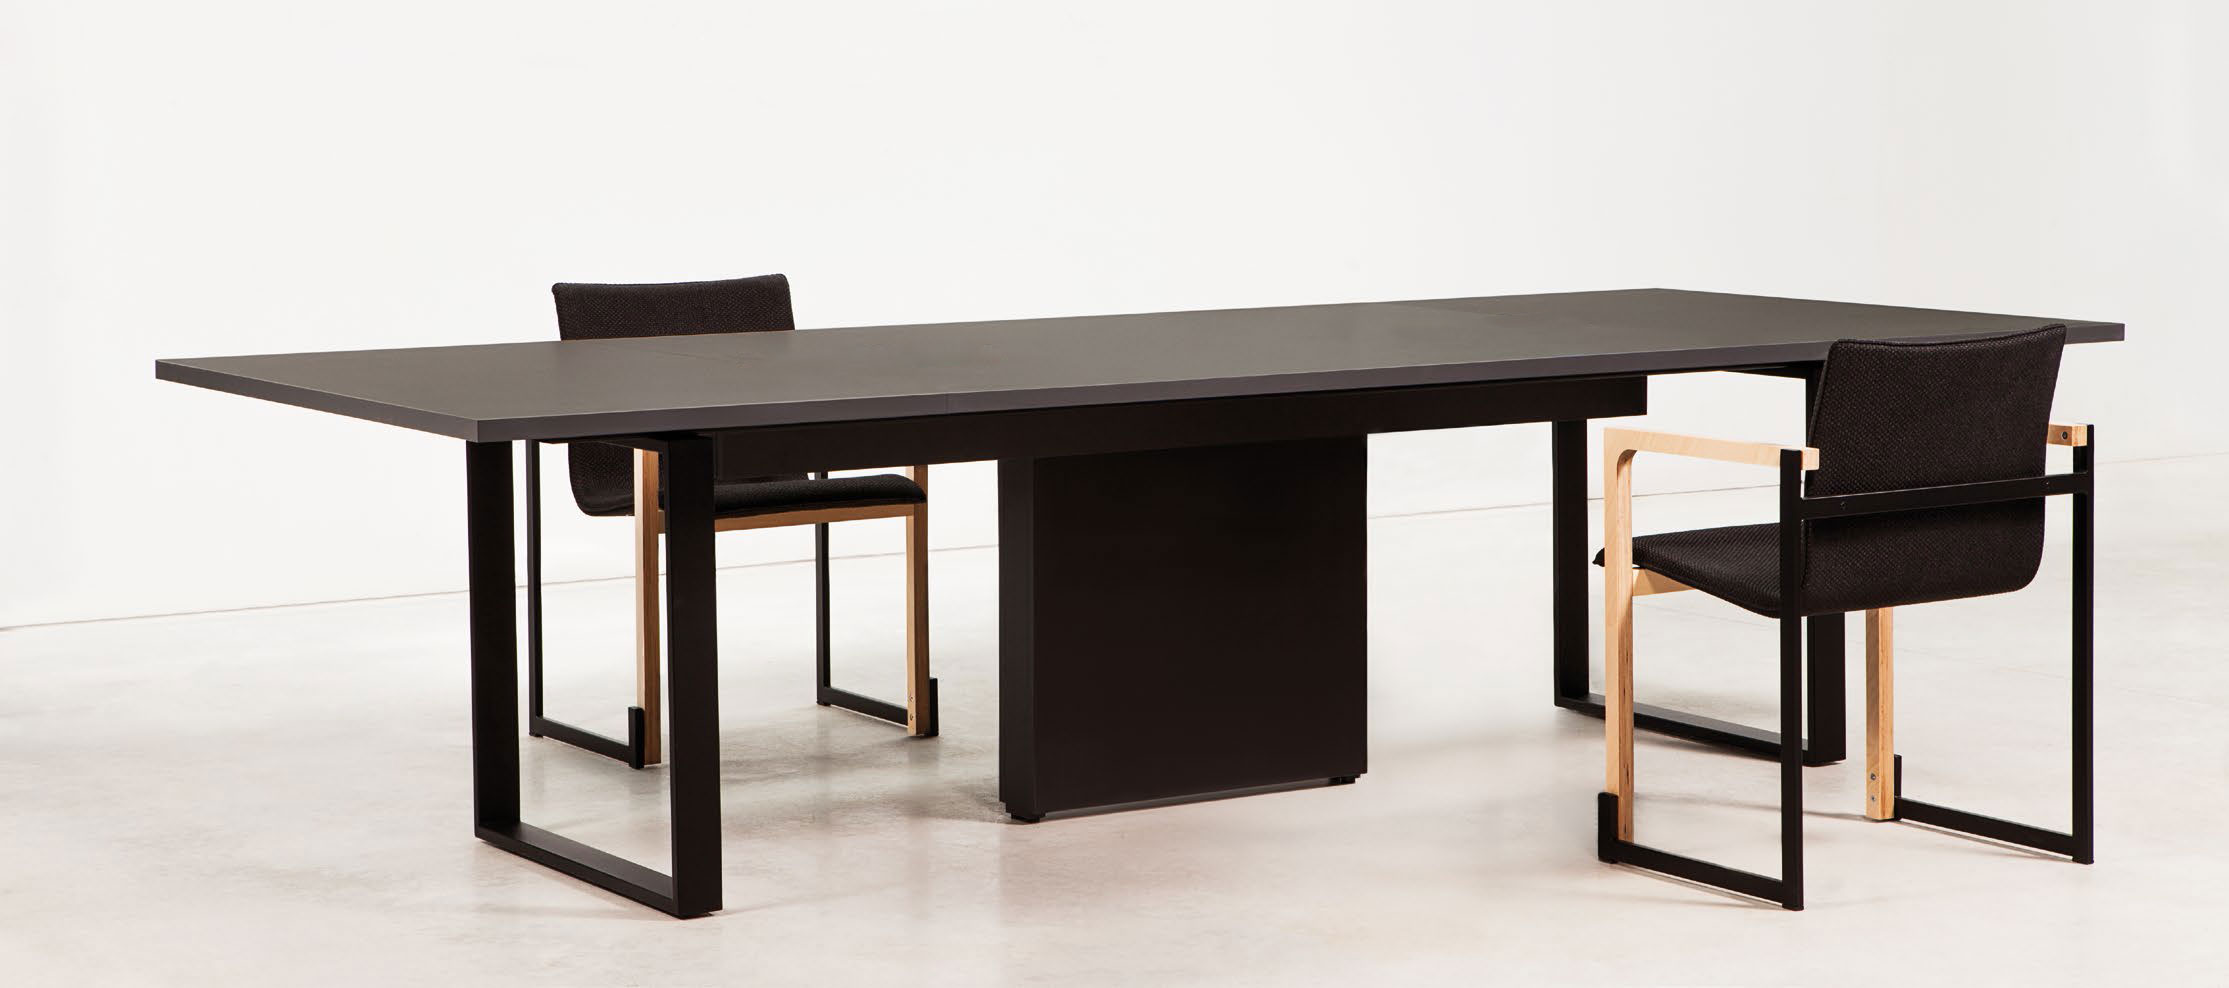 Table-de-réunion-design